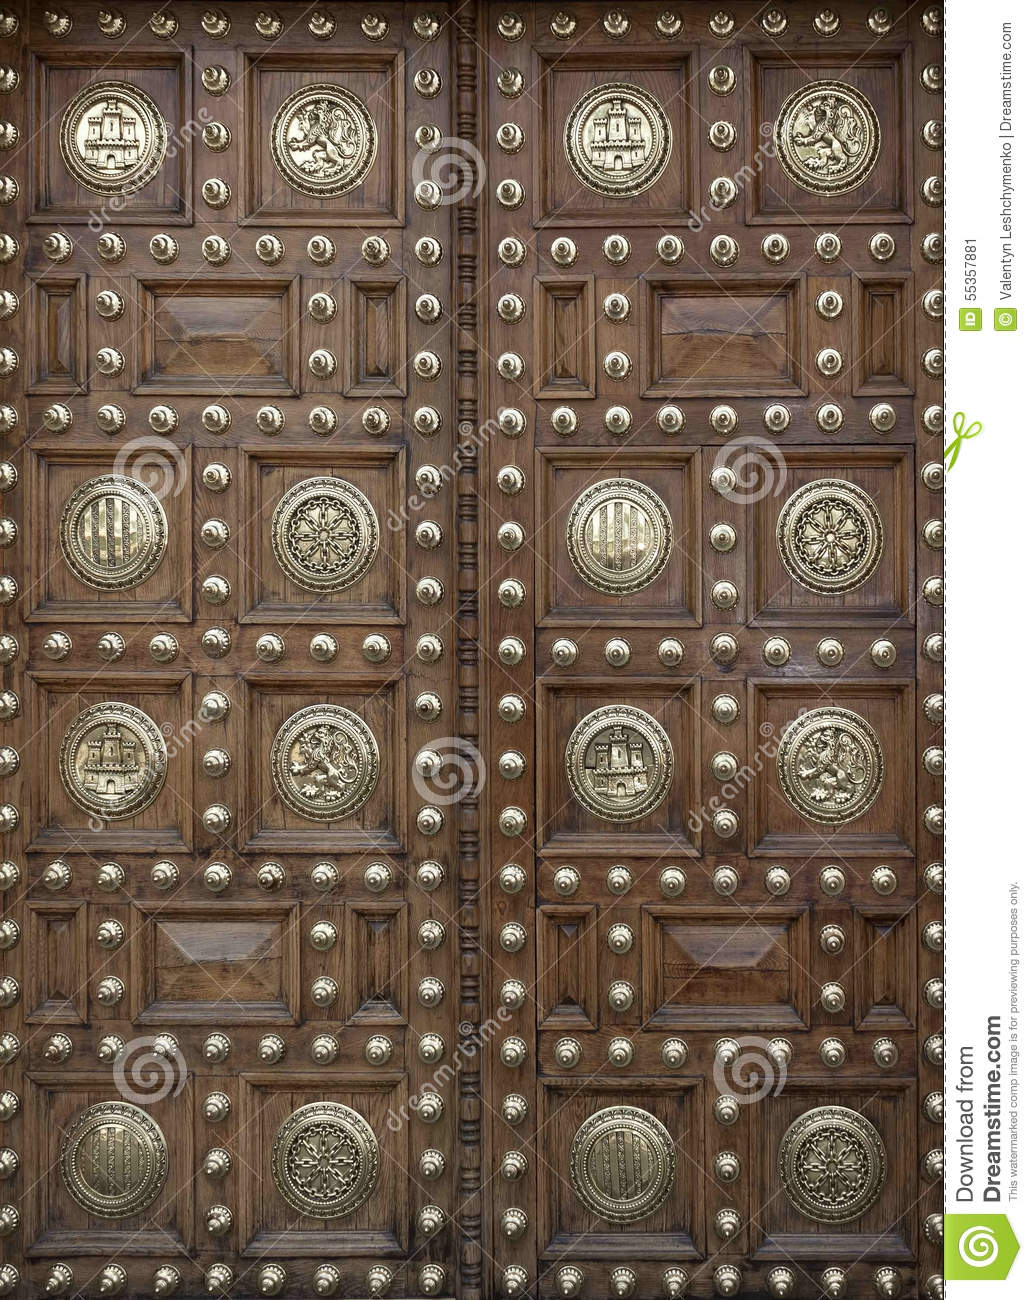 Large Wooden Doors Decorated Stock Image - Image: 55357881